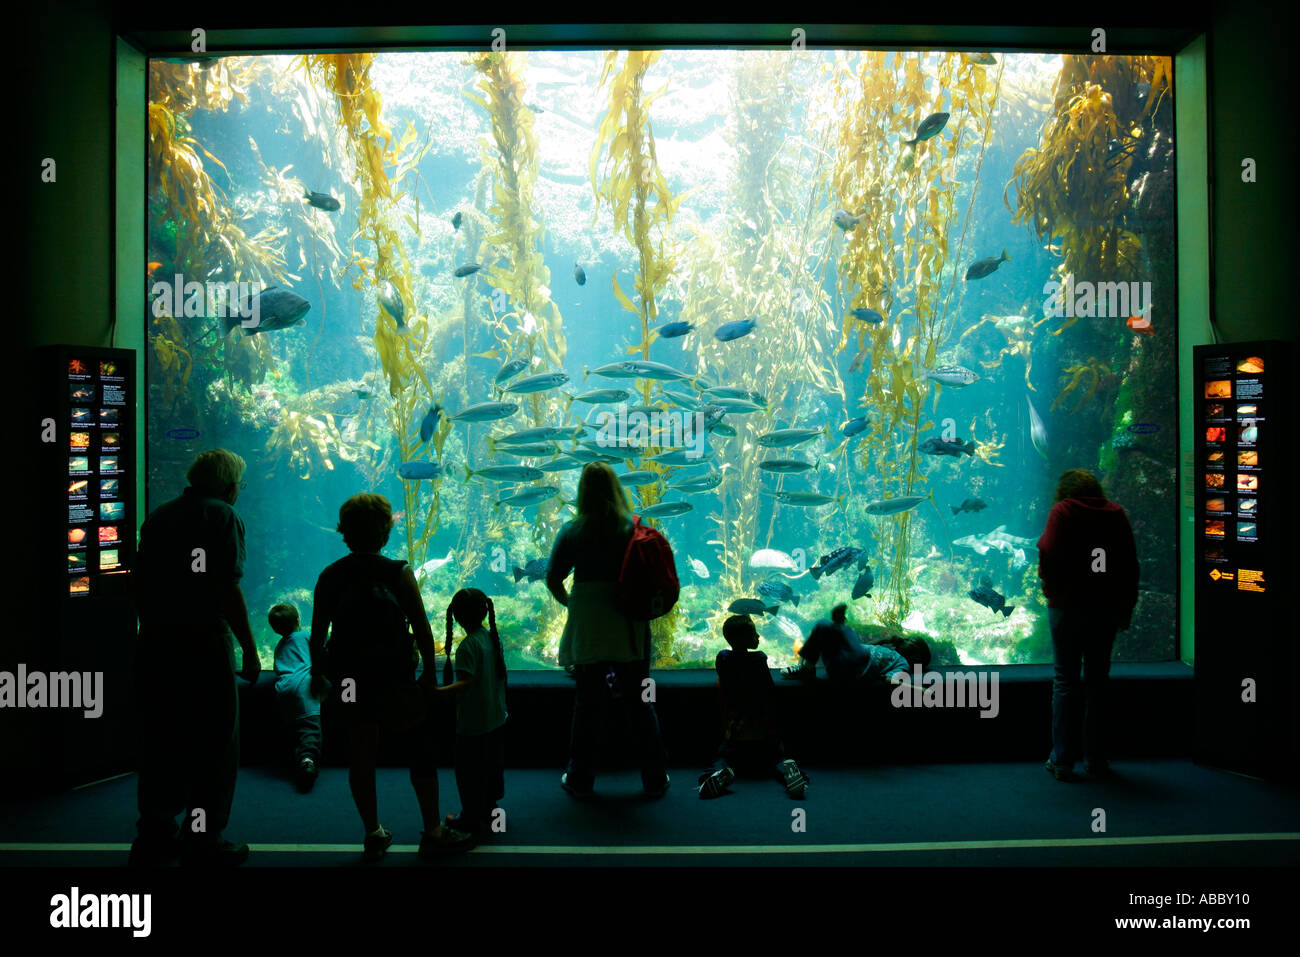 Birch Aquarium At Scripps La Jolla California Sd Stock